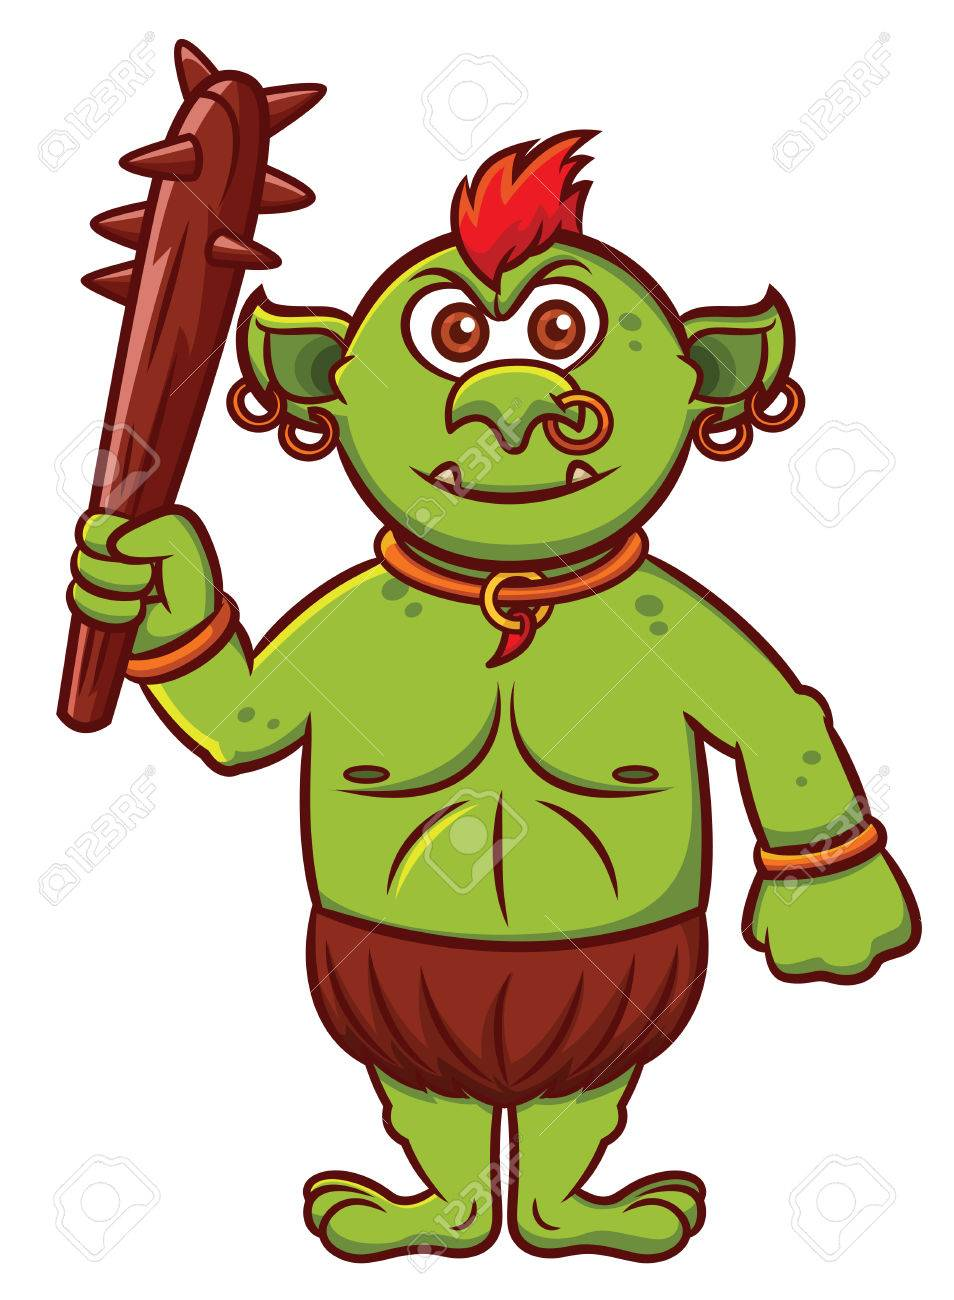 troll cartoon royalty free cliparts vectors and stock illustration rh 123rf com troll clip art in color to print for free troll clip art images